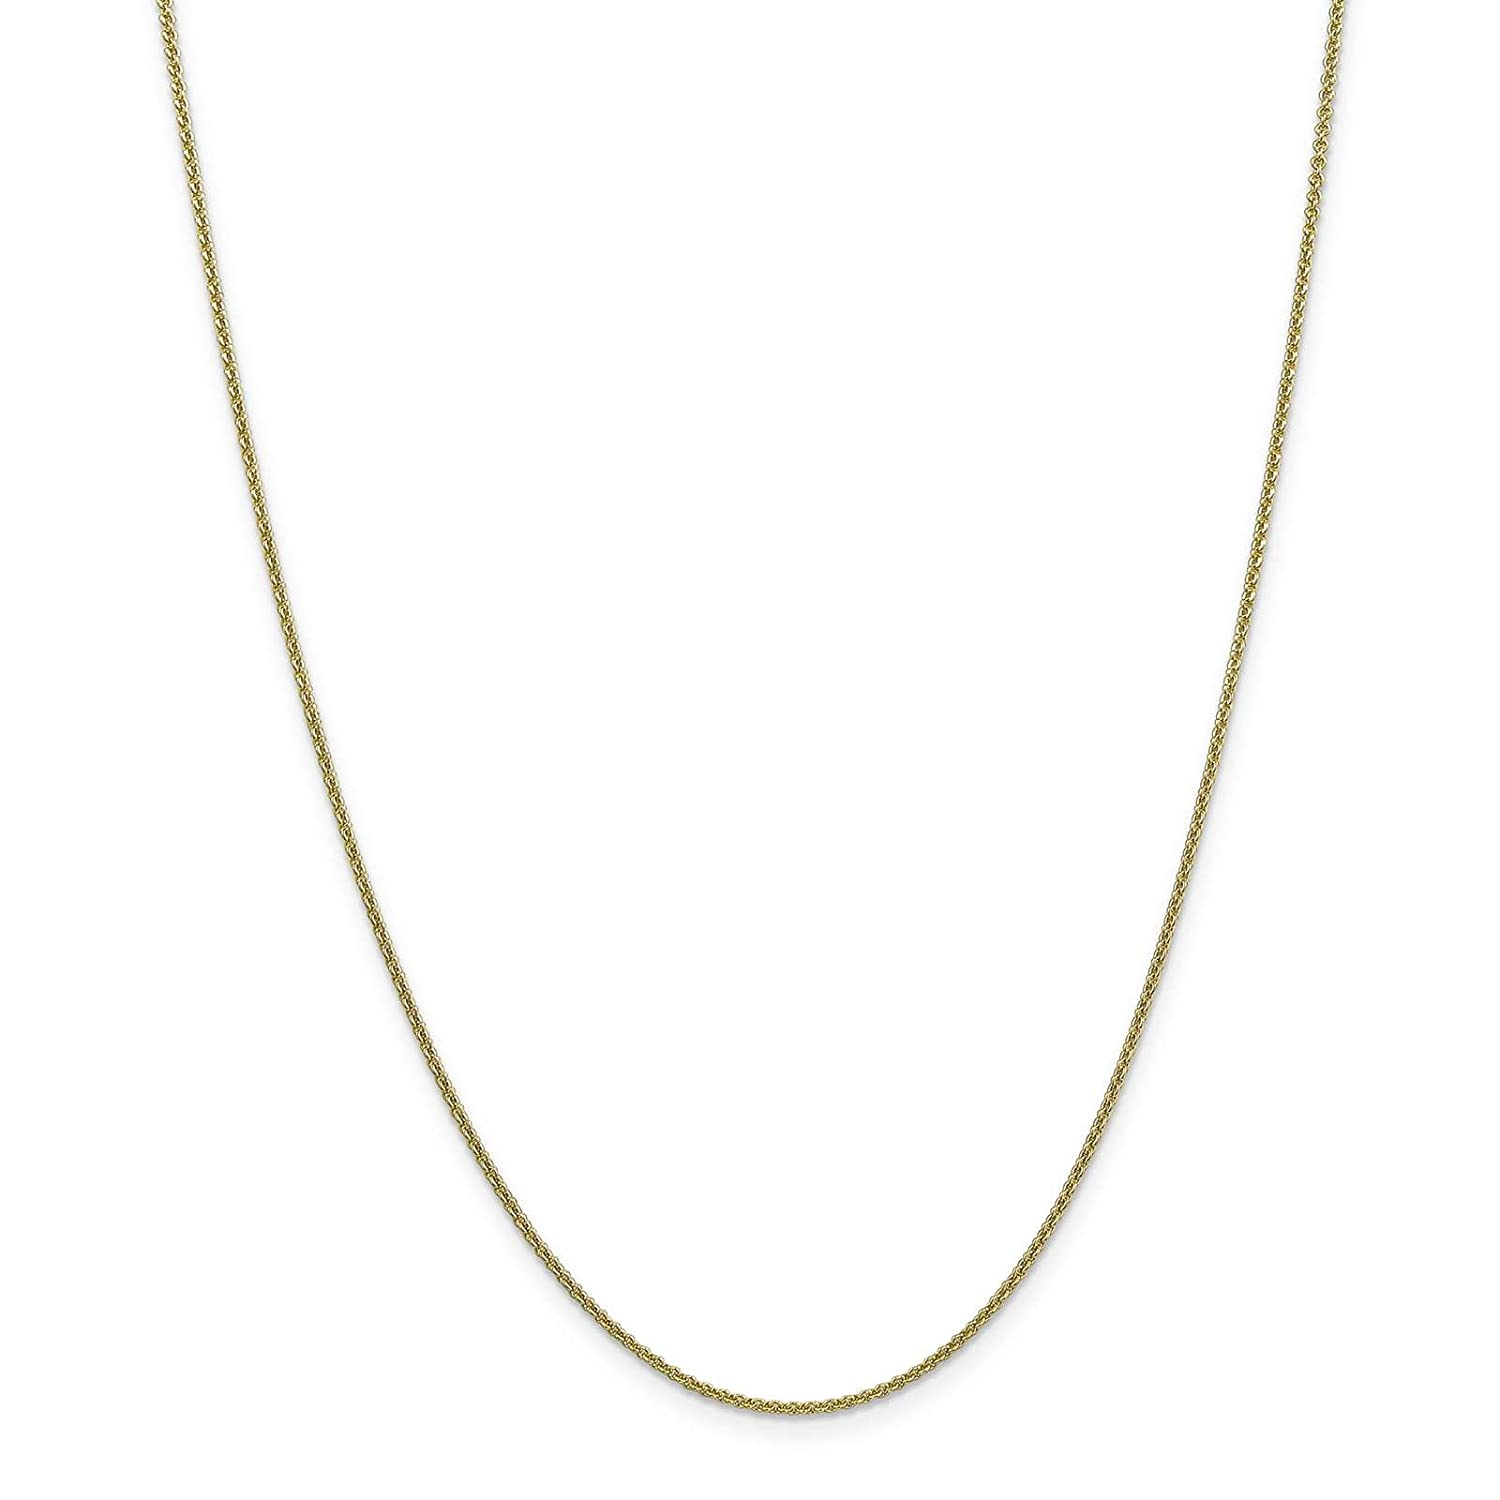 10k Yellow Gold Polished 1.5mm Cable Link Chain Bracelet Anklet 9